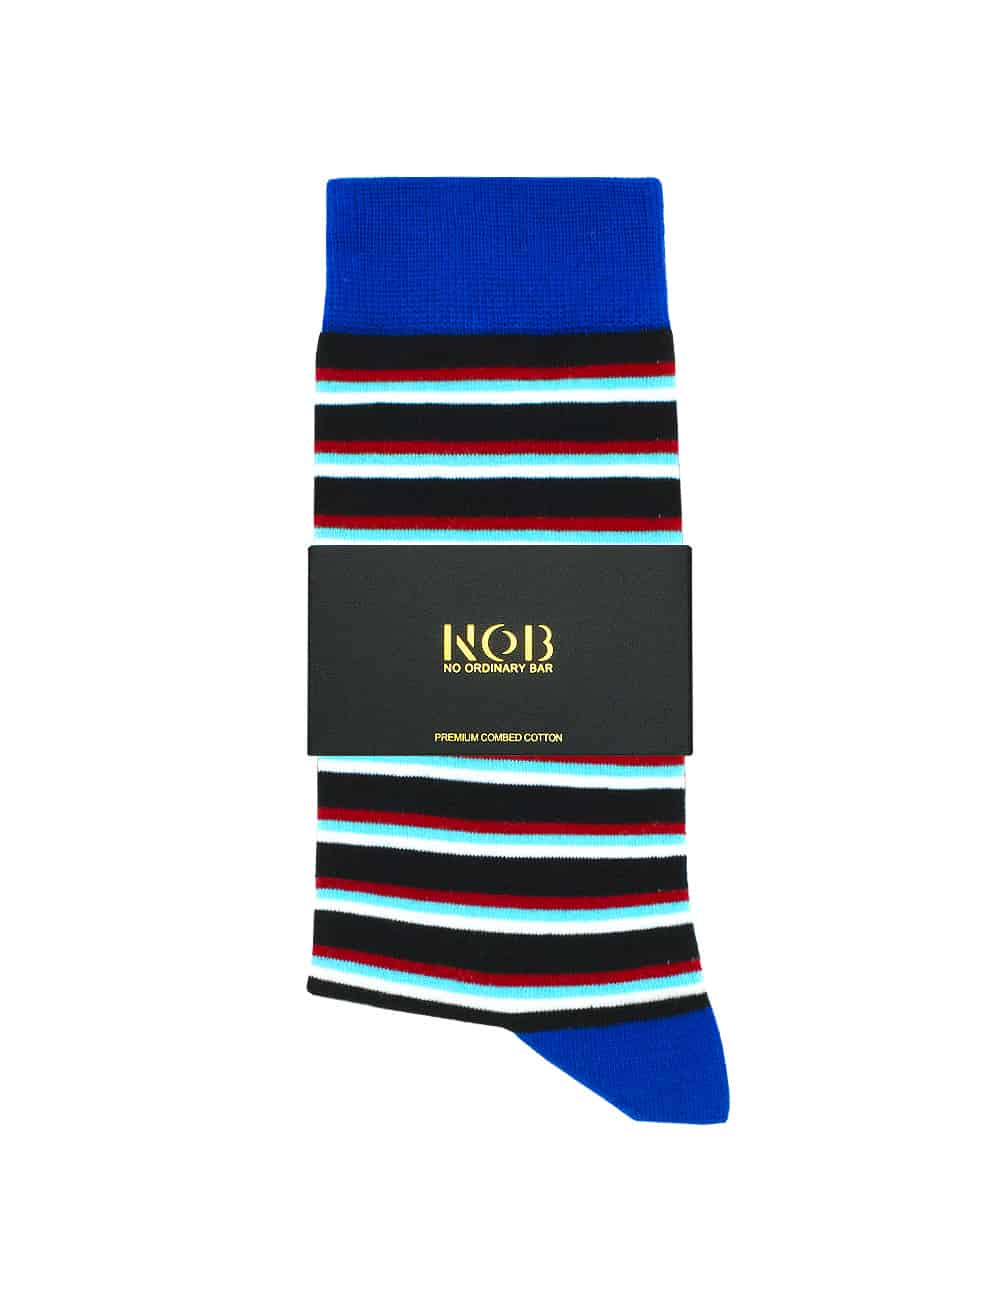 Navy with Red, Turquoise and White Stripes Crew Socks made with Premium Combed Cotton SOC4A.NOB1